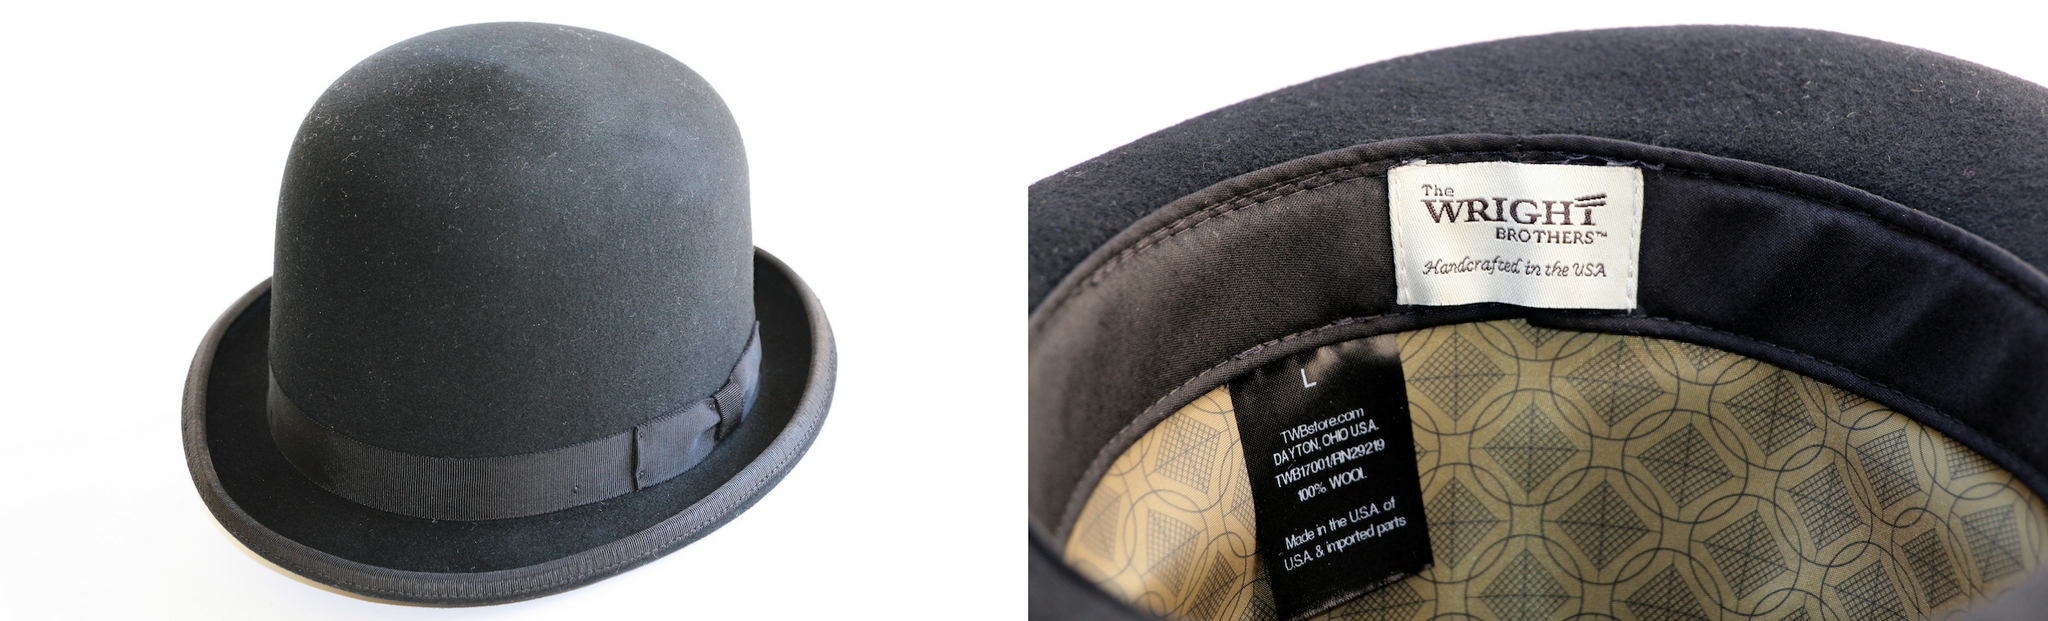 The Wright Brothers USA Hats Collection